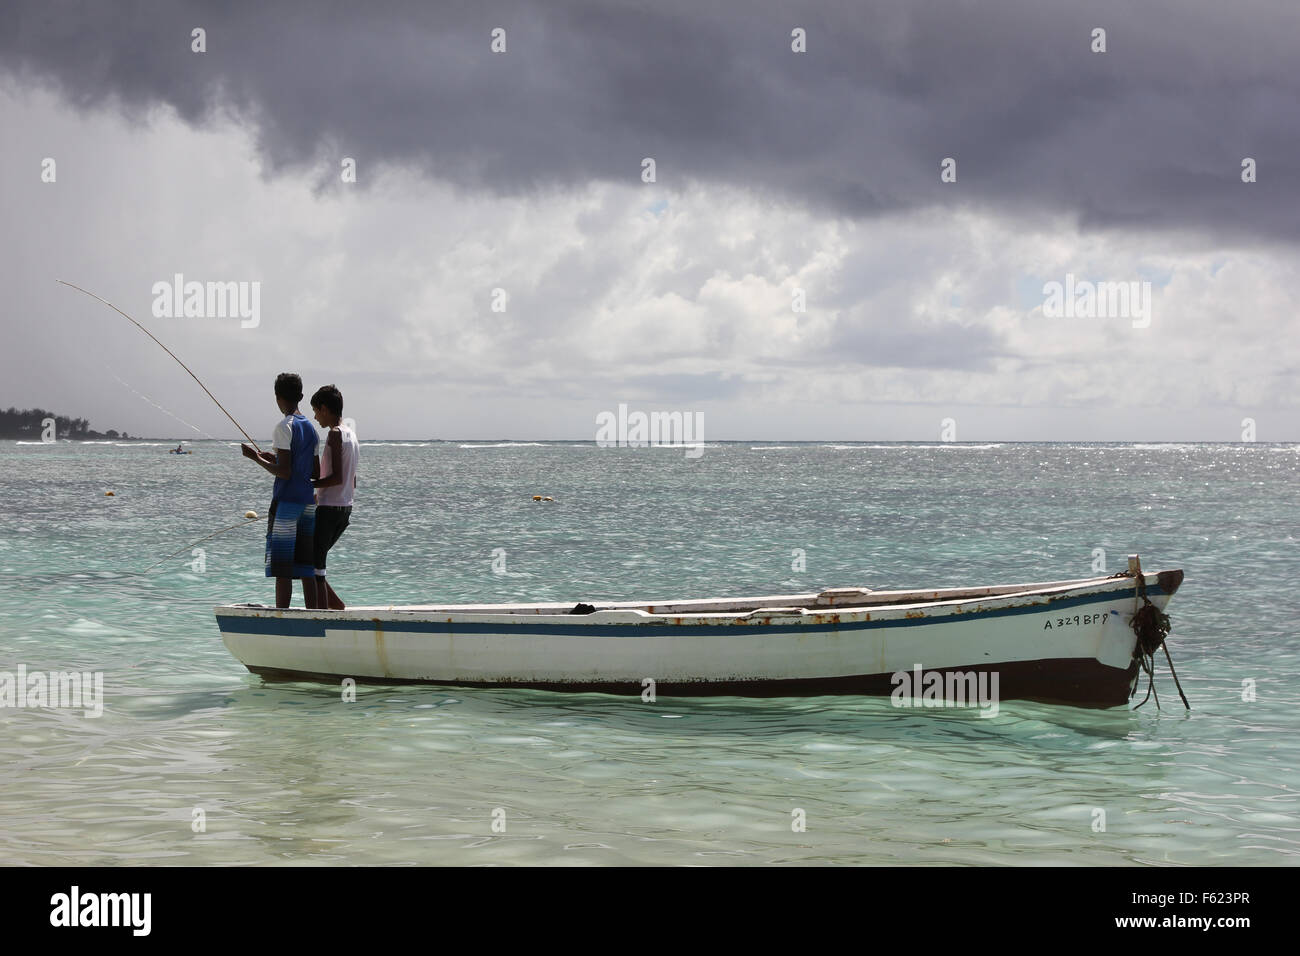 Two African boys are fishing on a boat. Stock Photo